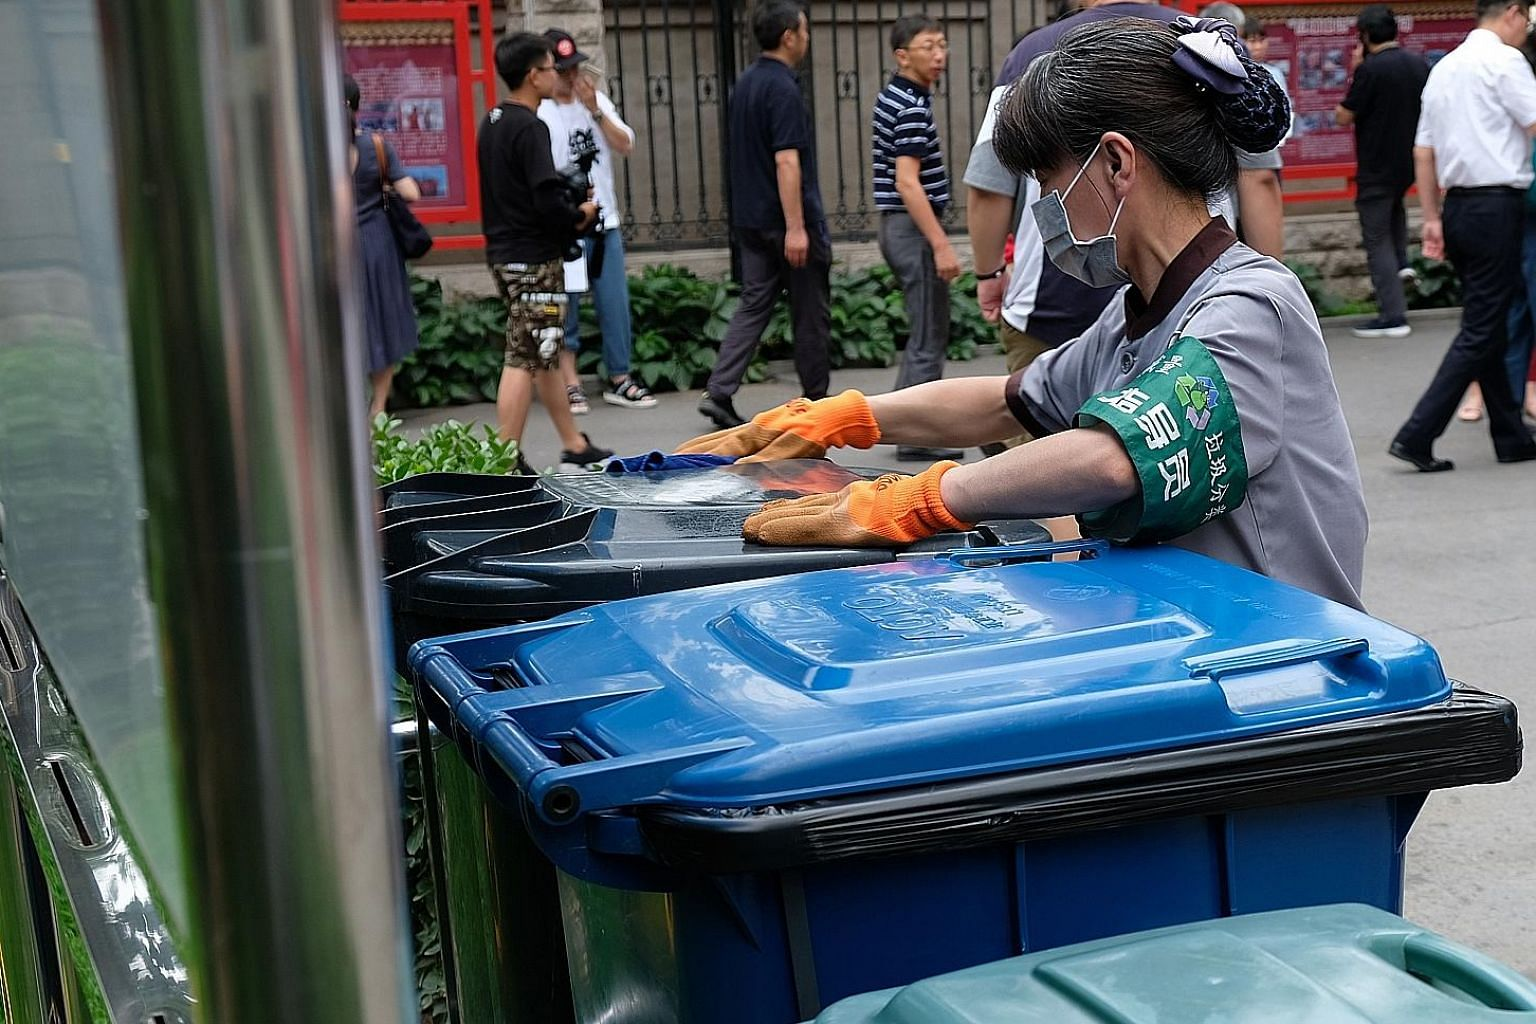 Separate bins at the Yilianxuan housing estate for kitchen waste, recycleables and non-recycleables.